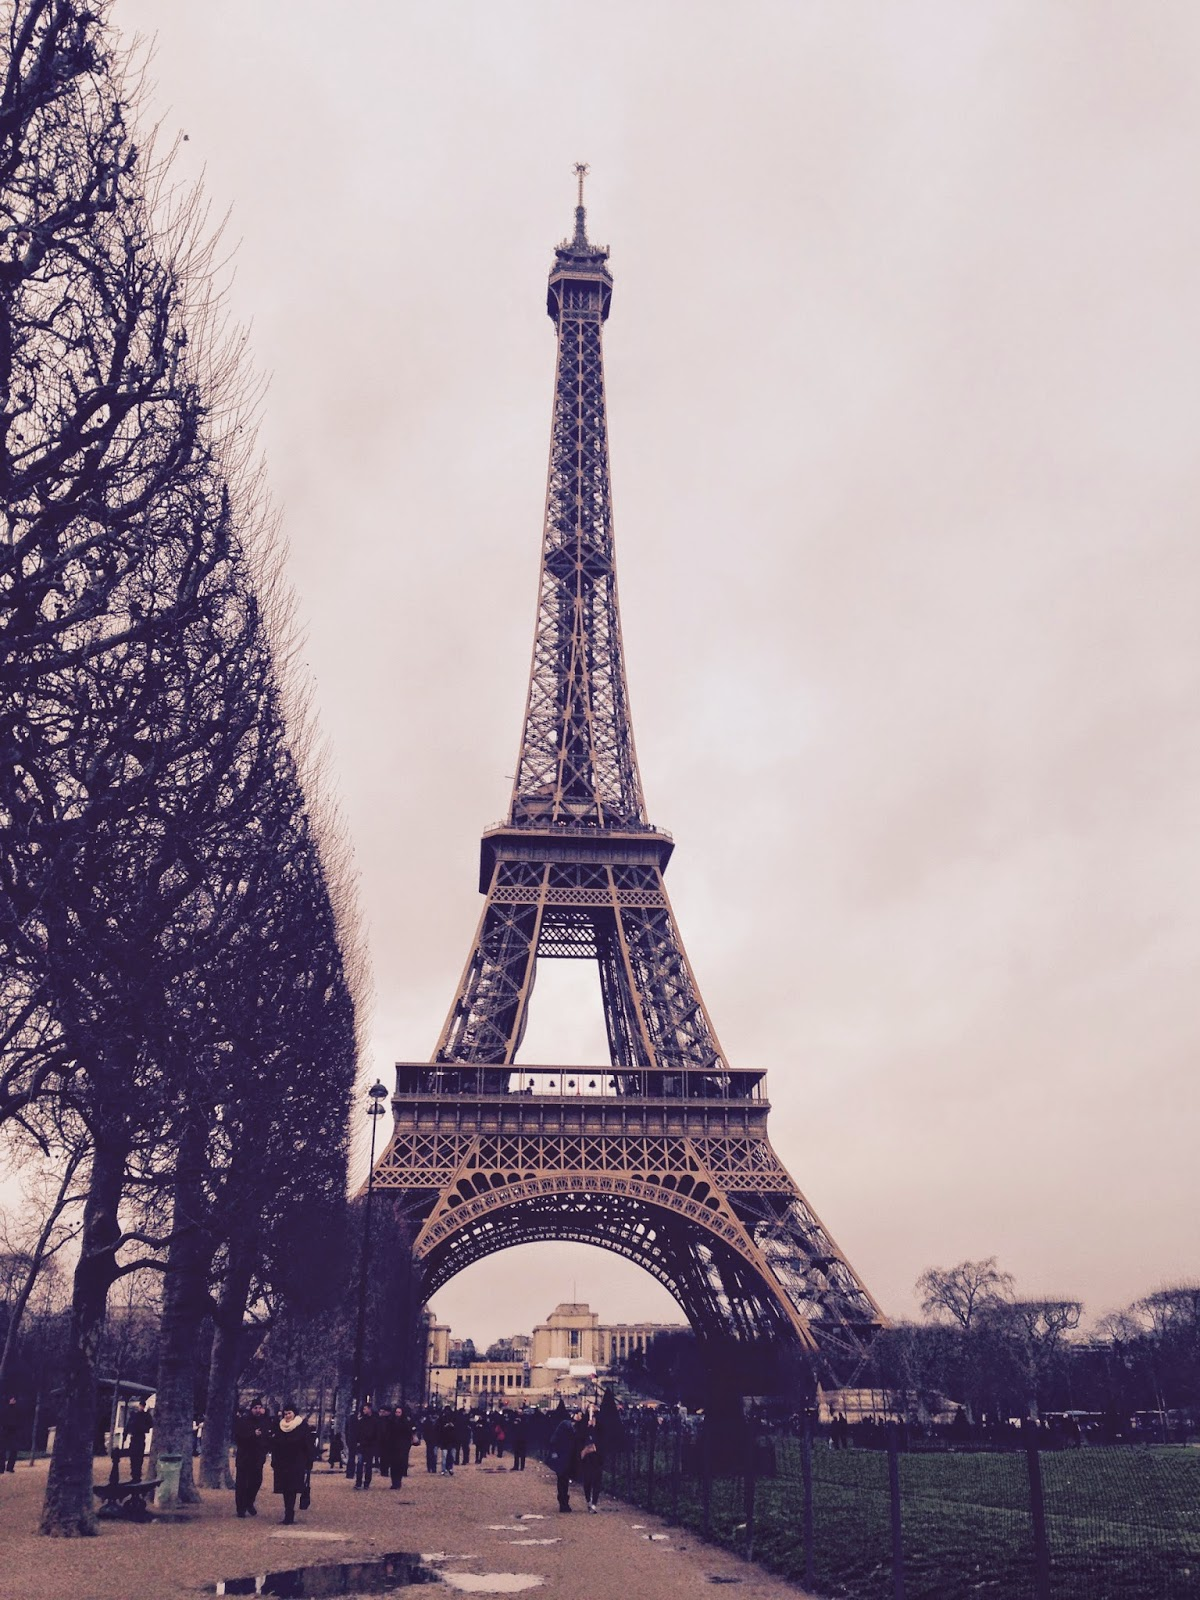 The Eiffel Tower in January